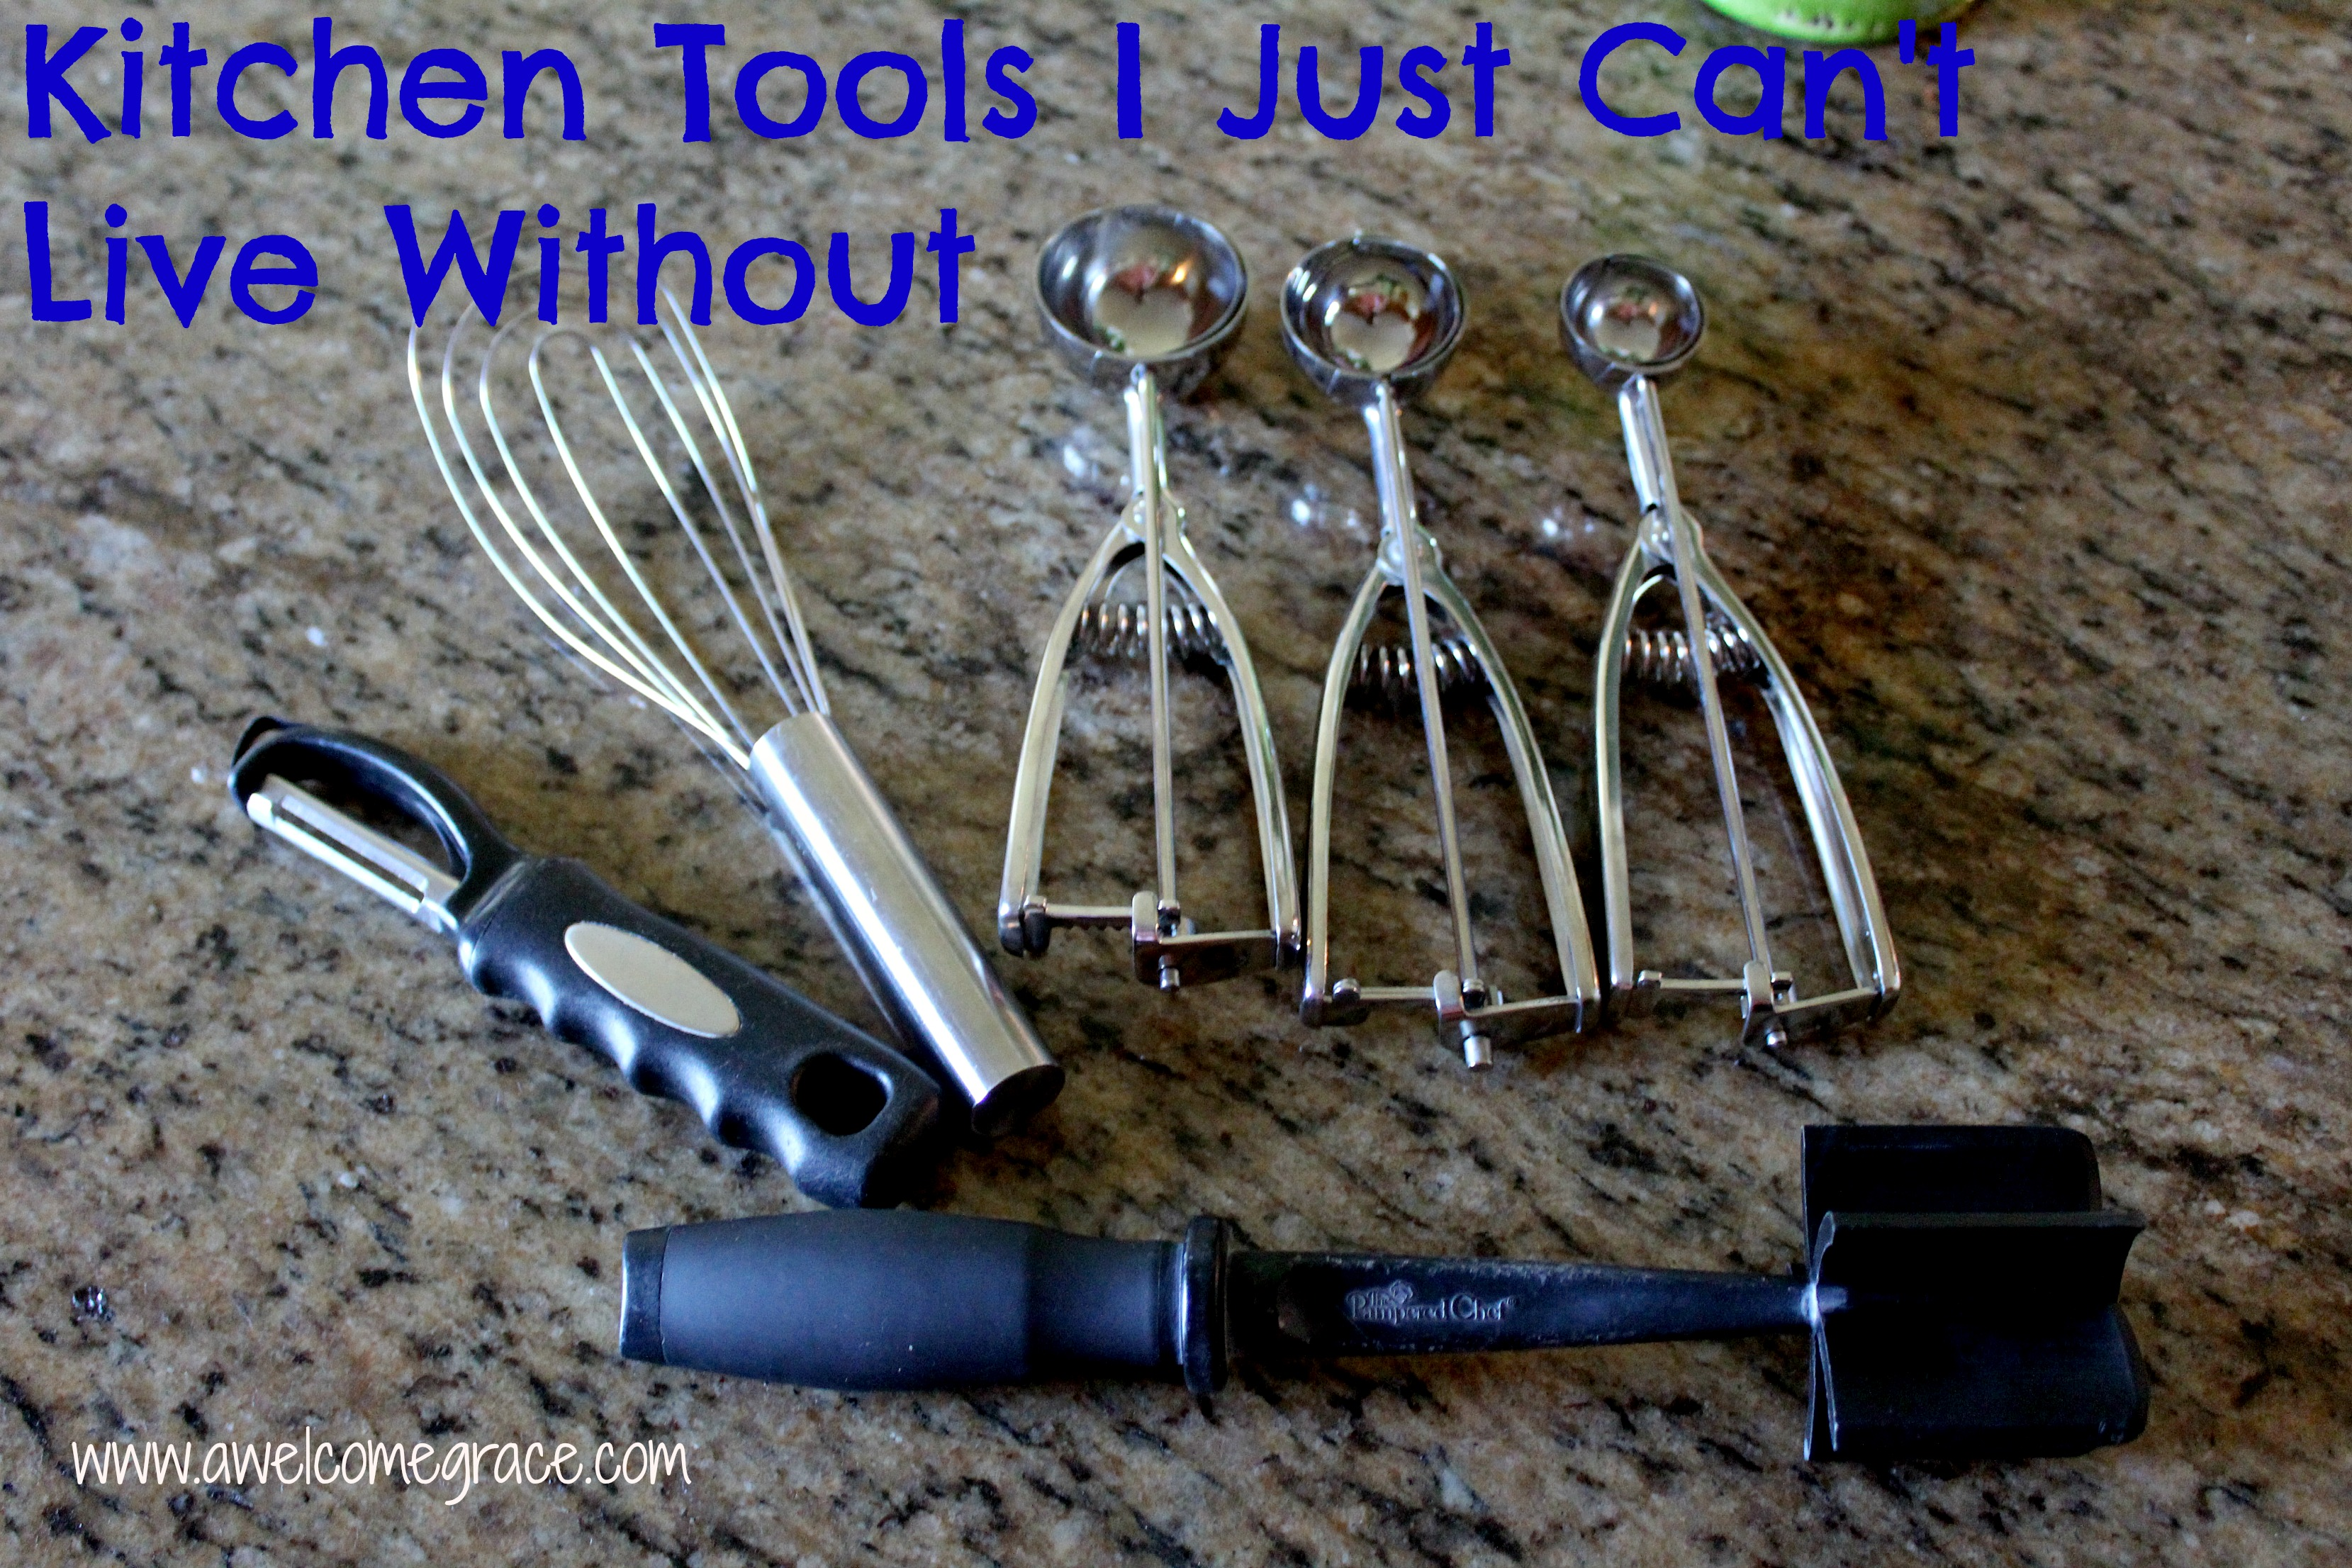 4 Kitchen Tools I Just Can't Live Without